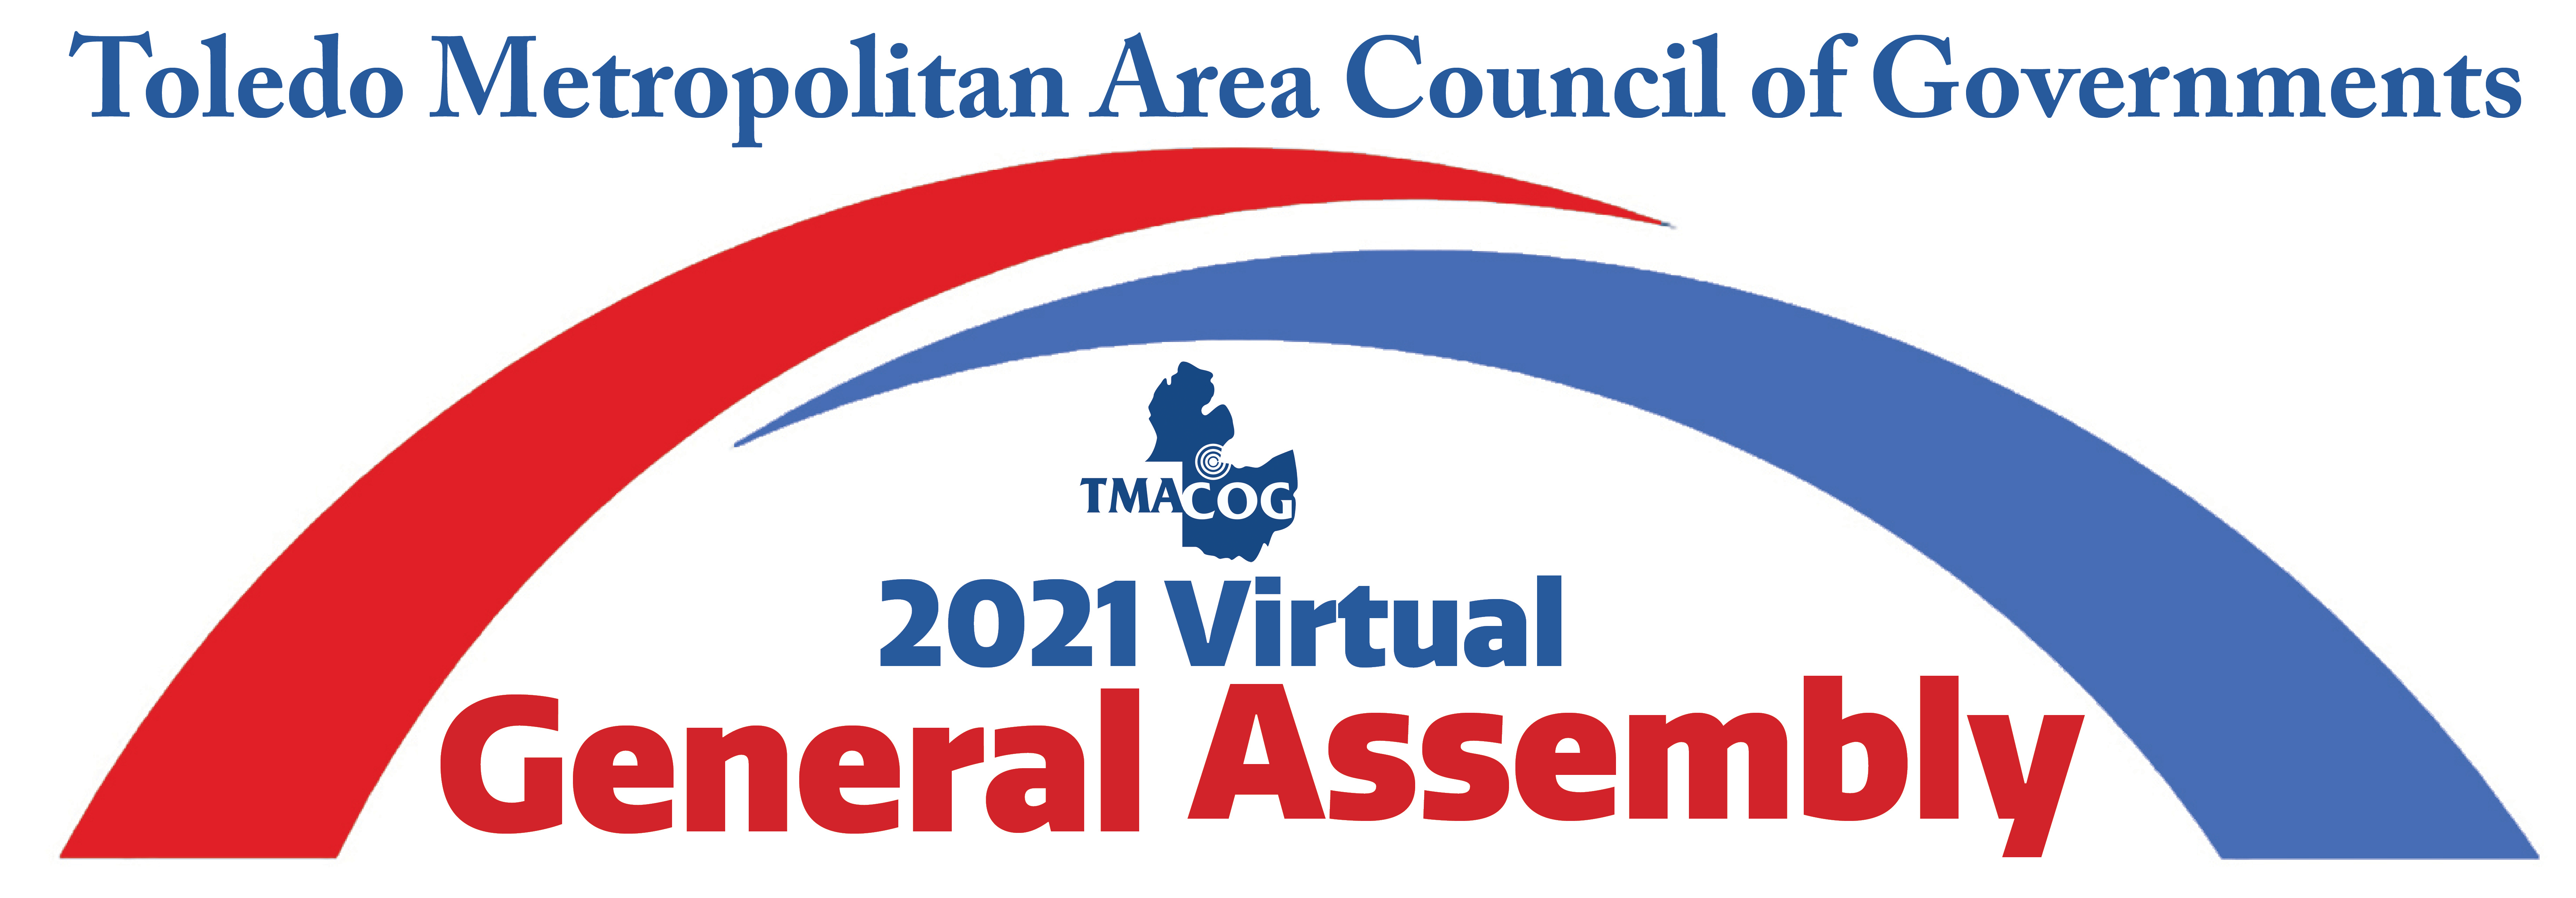 2021 Virtual General Assembly